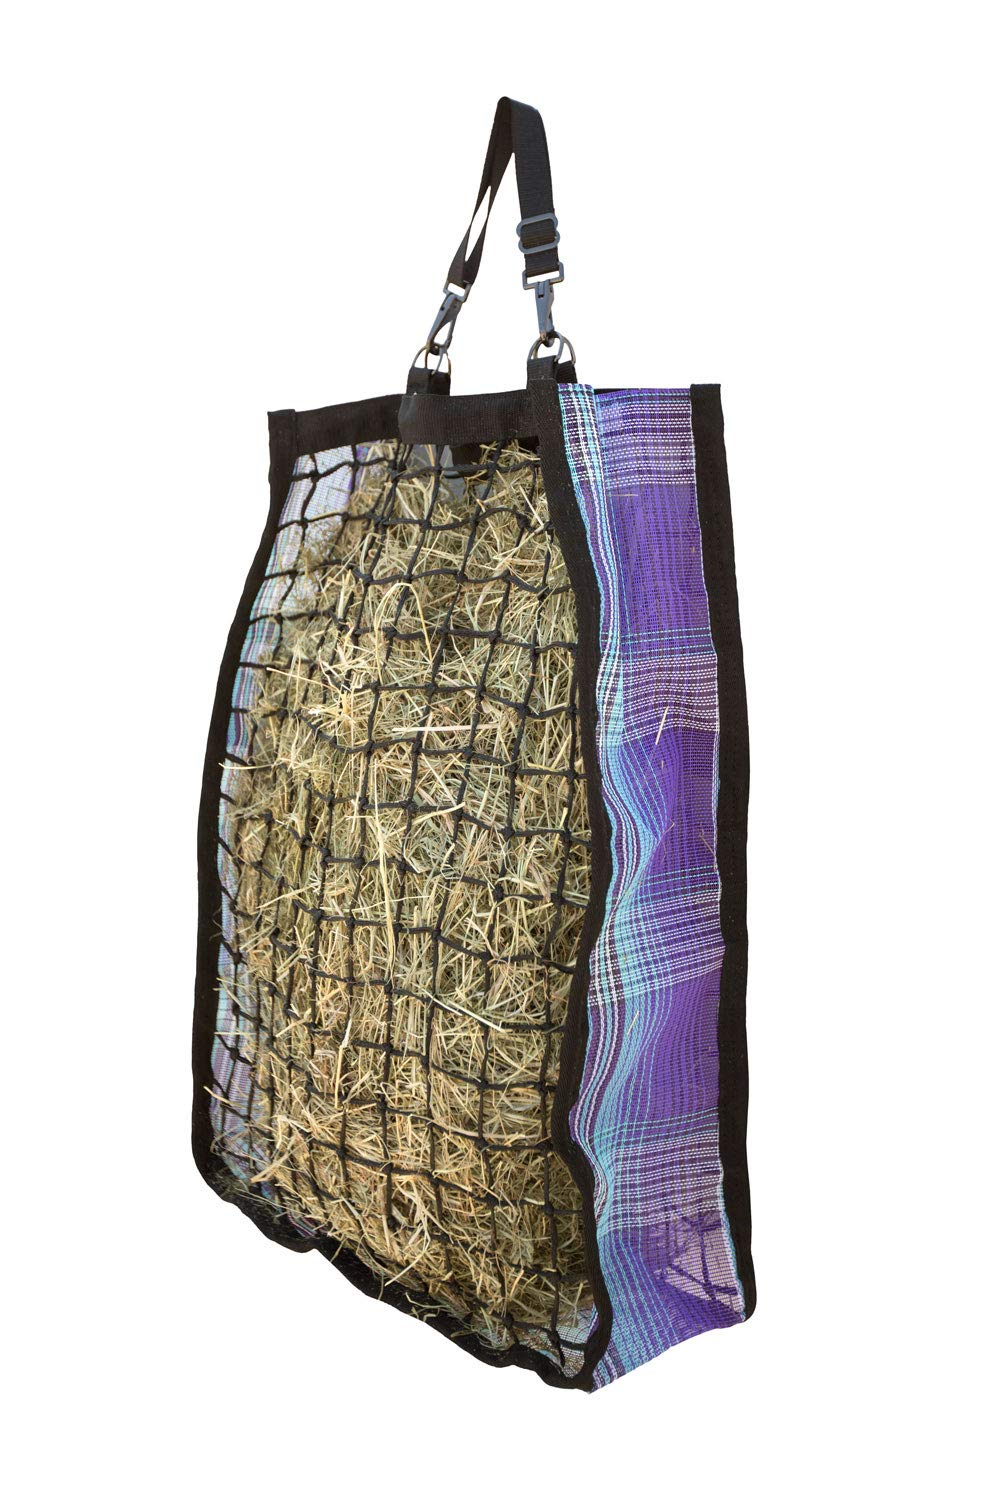 Kensington Slow Feed Hay Bag (4 Flake, Lavender Mint Plaid) by Kensington Protective Products